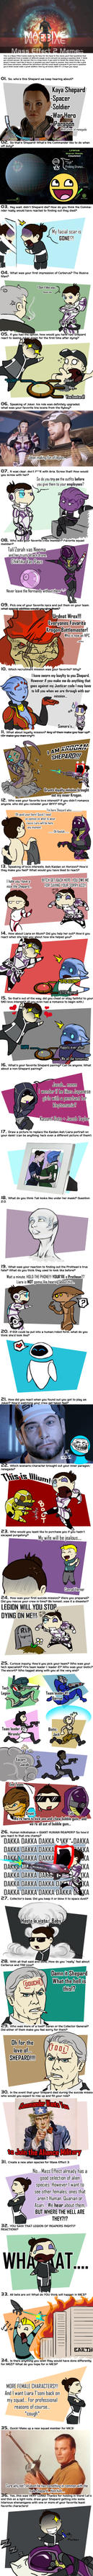 Massive Mass Effect2 Meme by canius